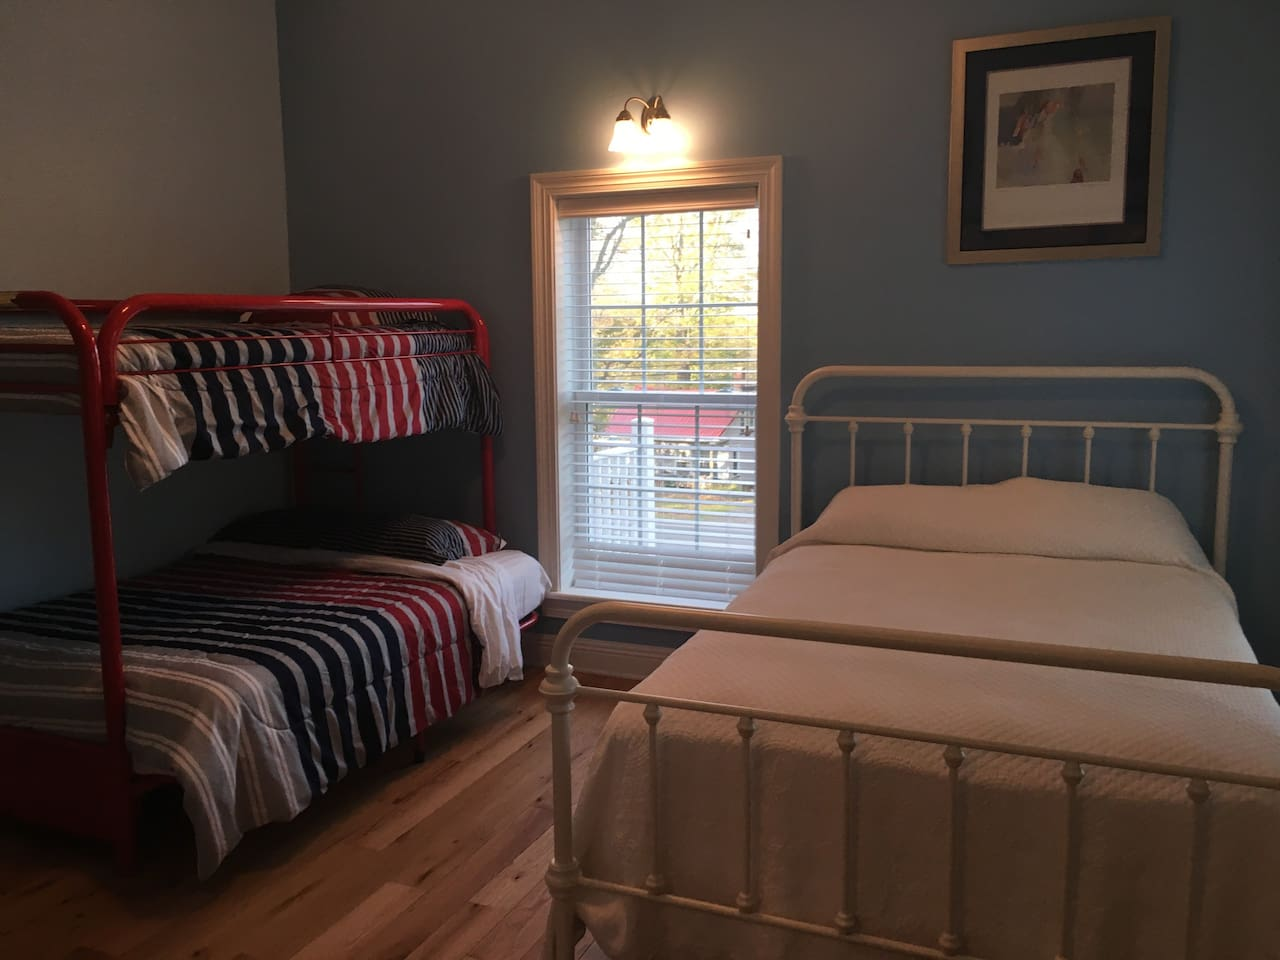 The Red, White & Blue Room has become a favorite at Crystal Run Suites